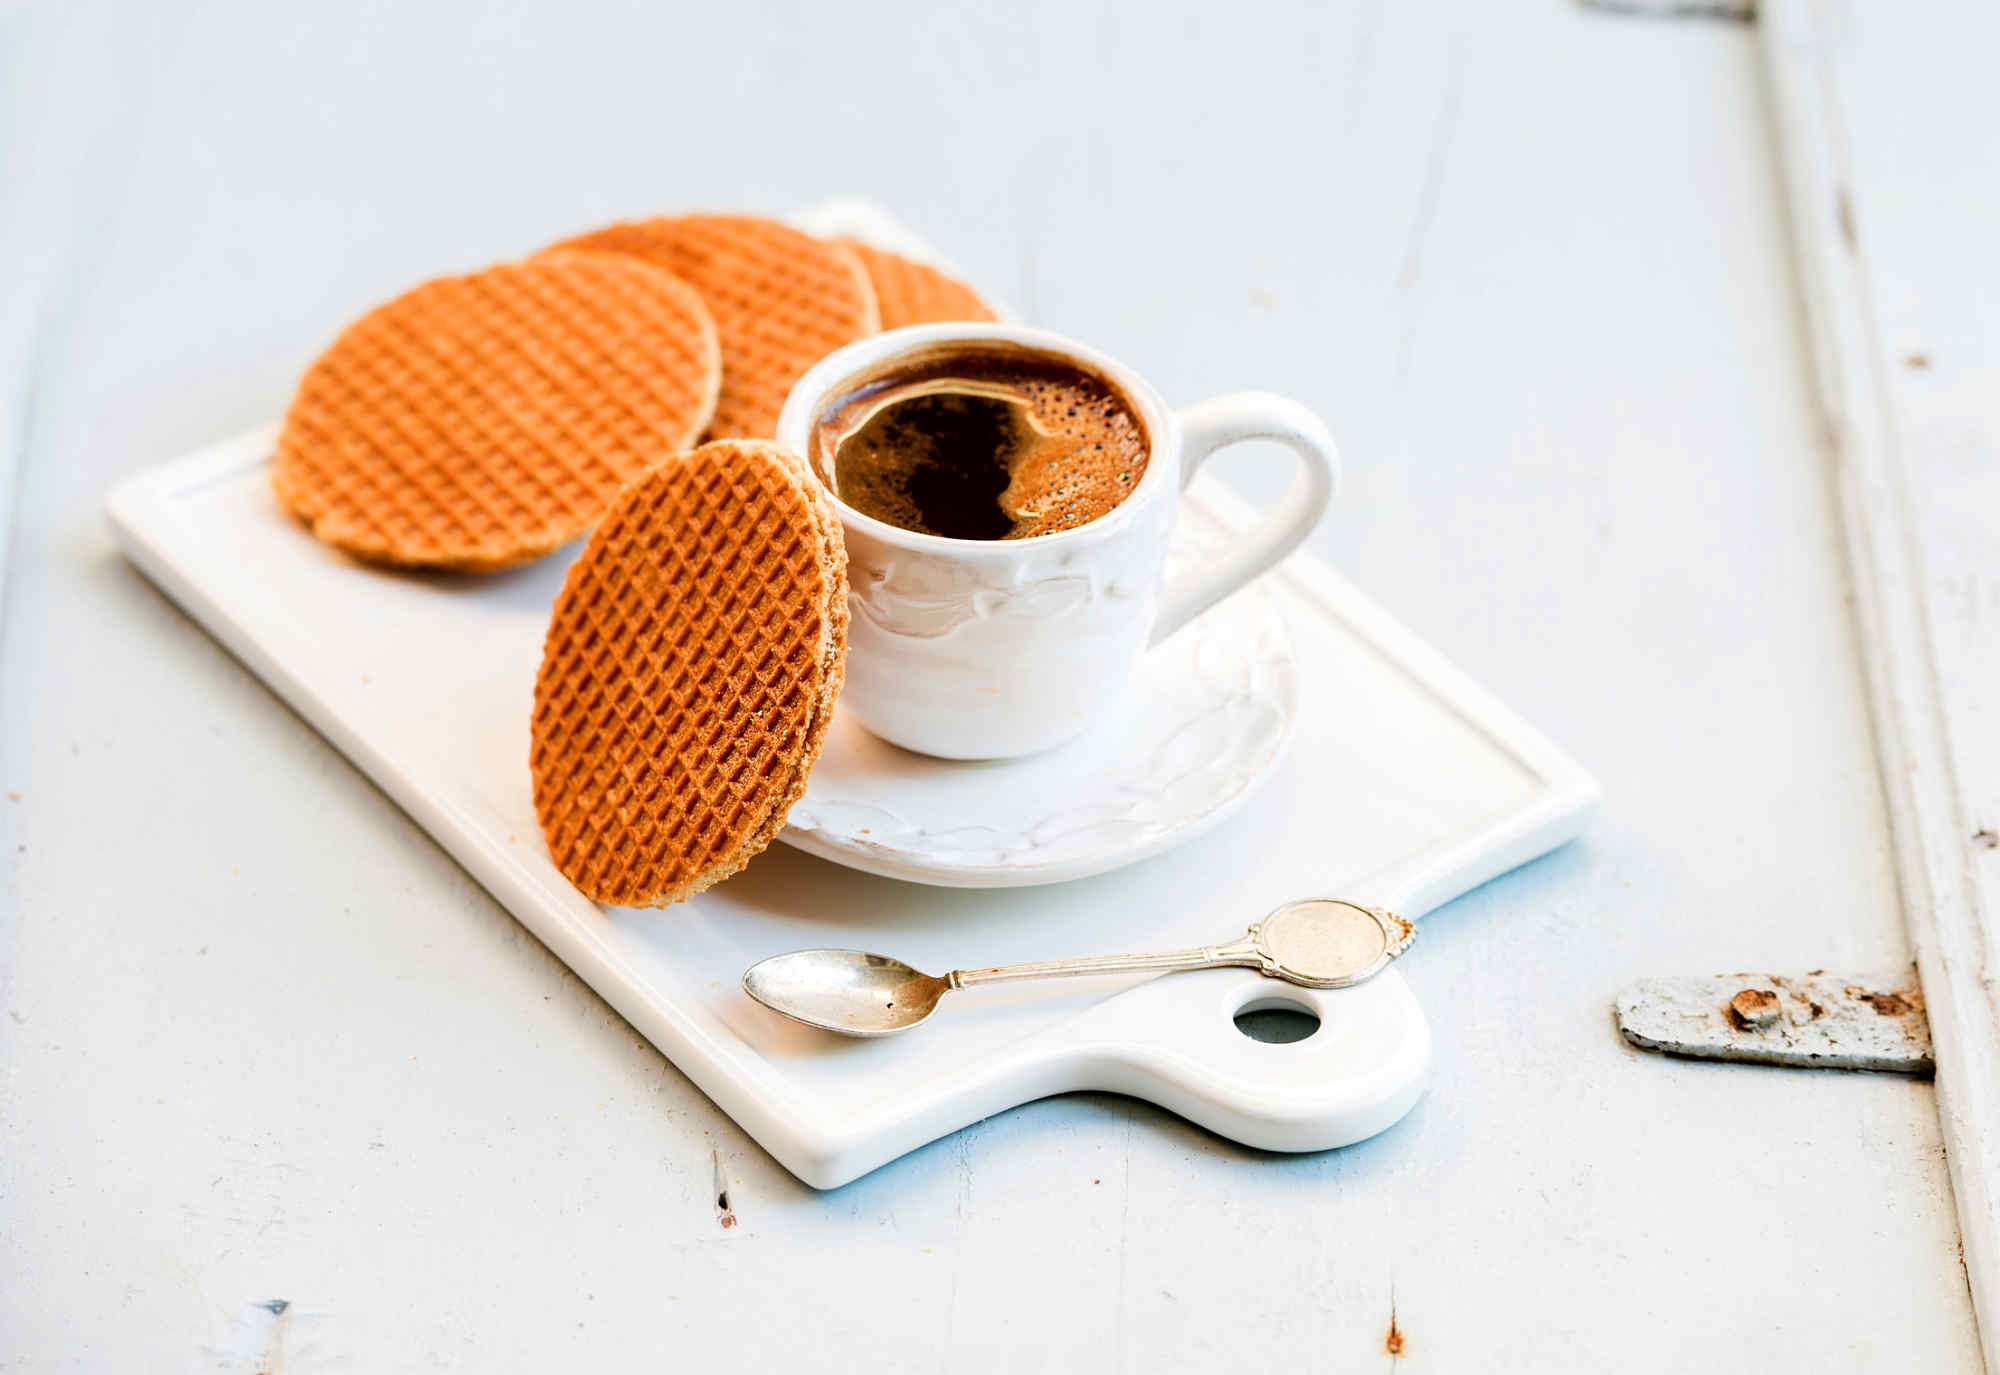 Stroopwafel in the Netherlands